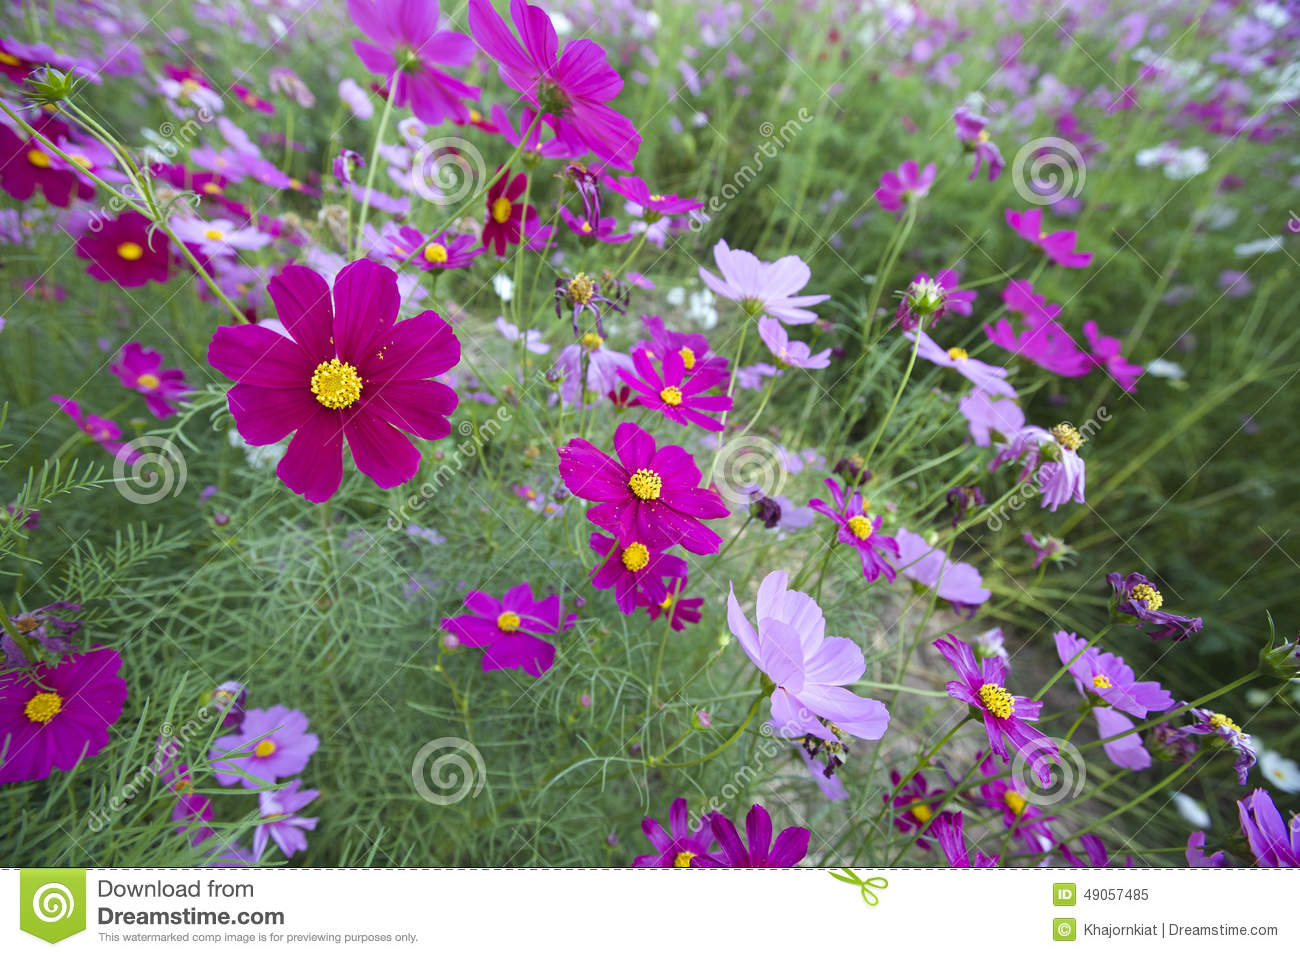 Cosmos flowers stock image image of flower single softness 49057485 download cosmos flowers stock image image of flower single softness 49057485 mightylinksfo